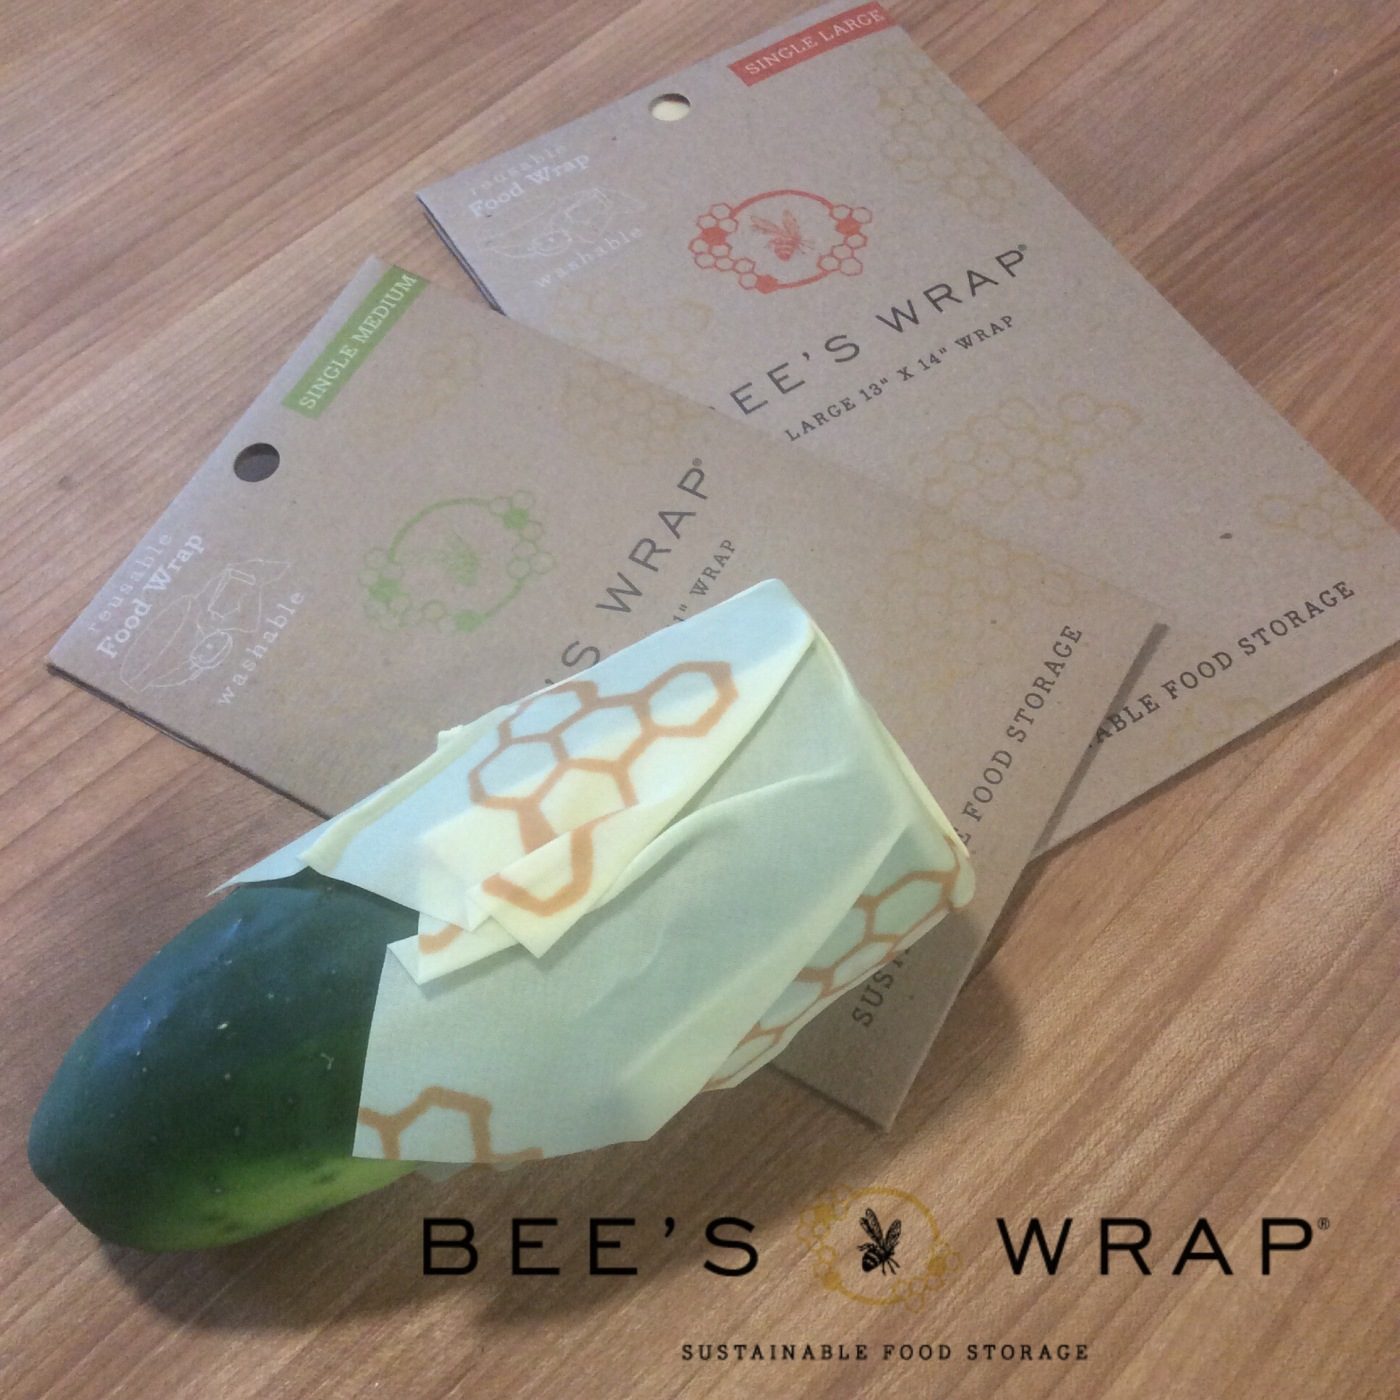 Better Beauty Vermont Bee's Wrap review